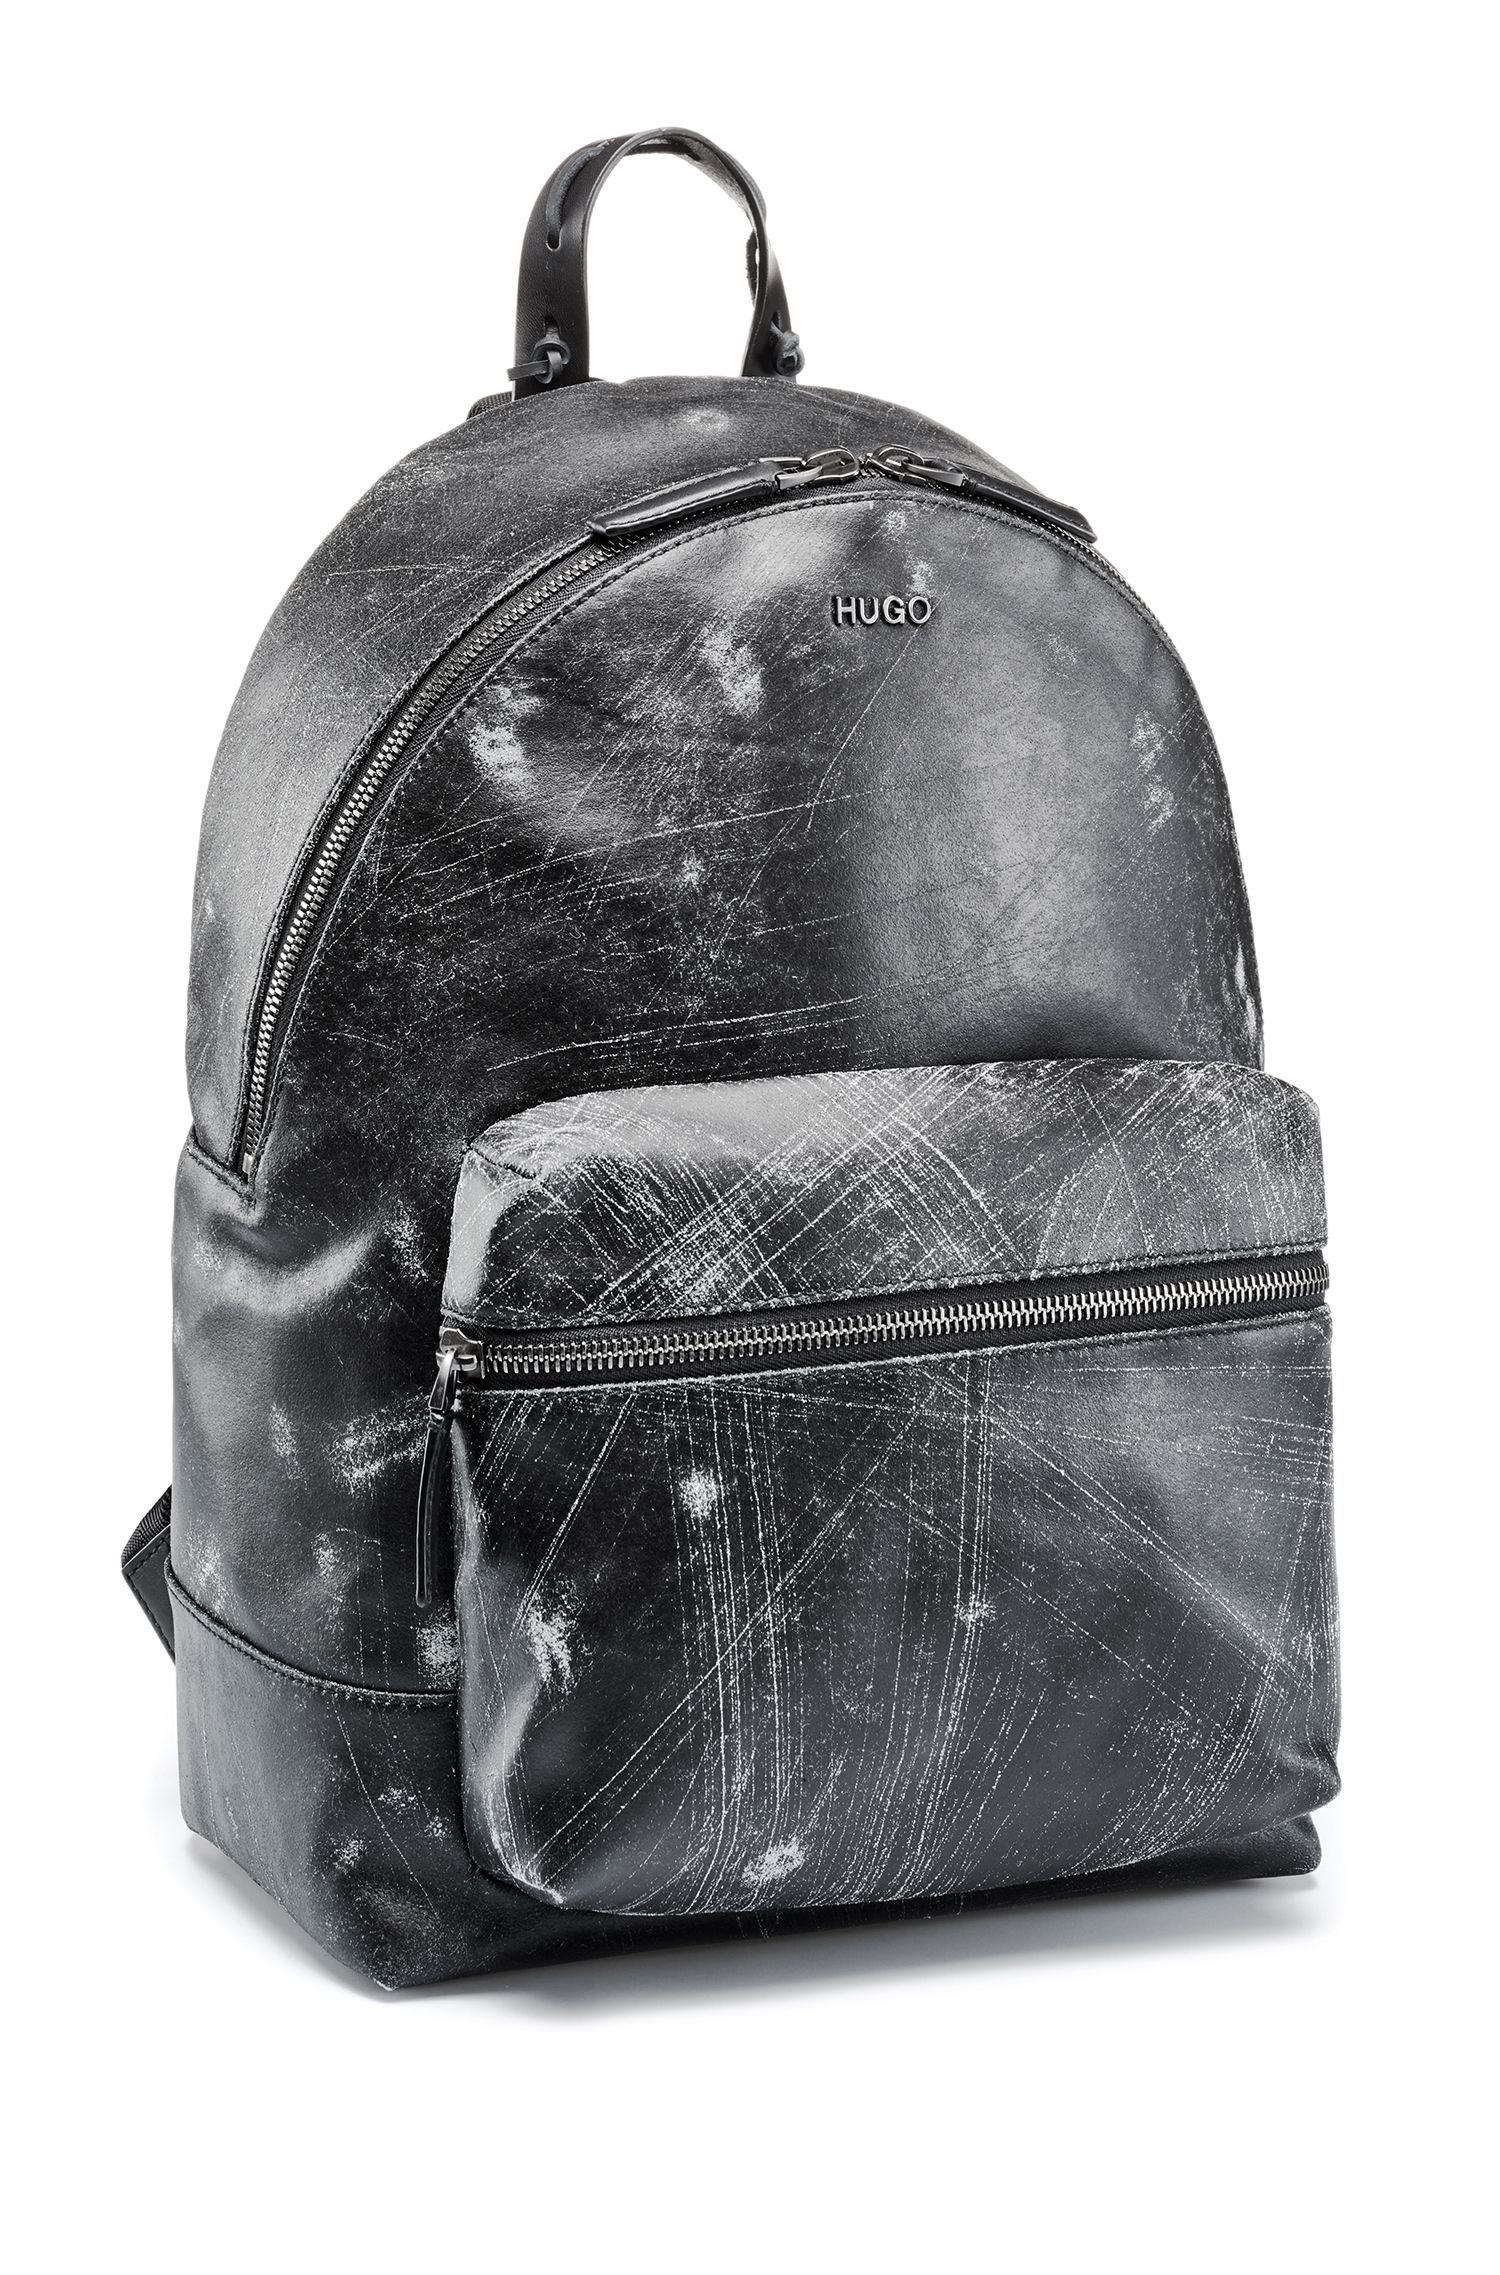 Italian-leather backpack with abstract scratch pattern